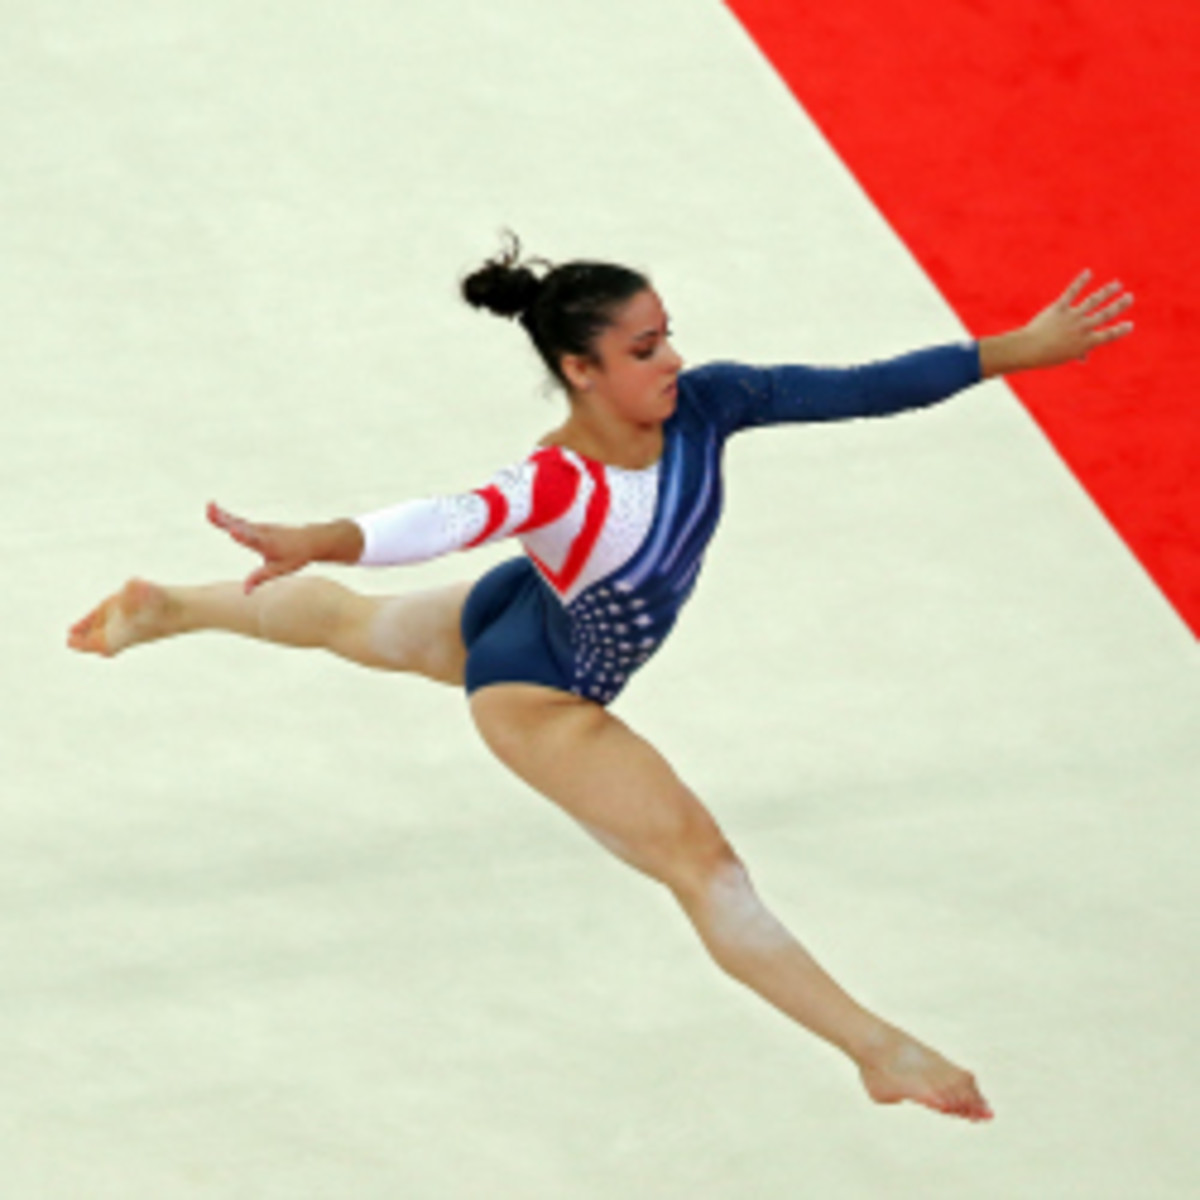 Aly Raisman, who won Olympic gold on the floor exercise, will join Dancing with the Stars and show off her skills on the dance floor. (Hannah Johnston/Getty Images)